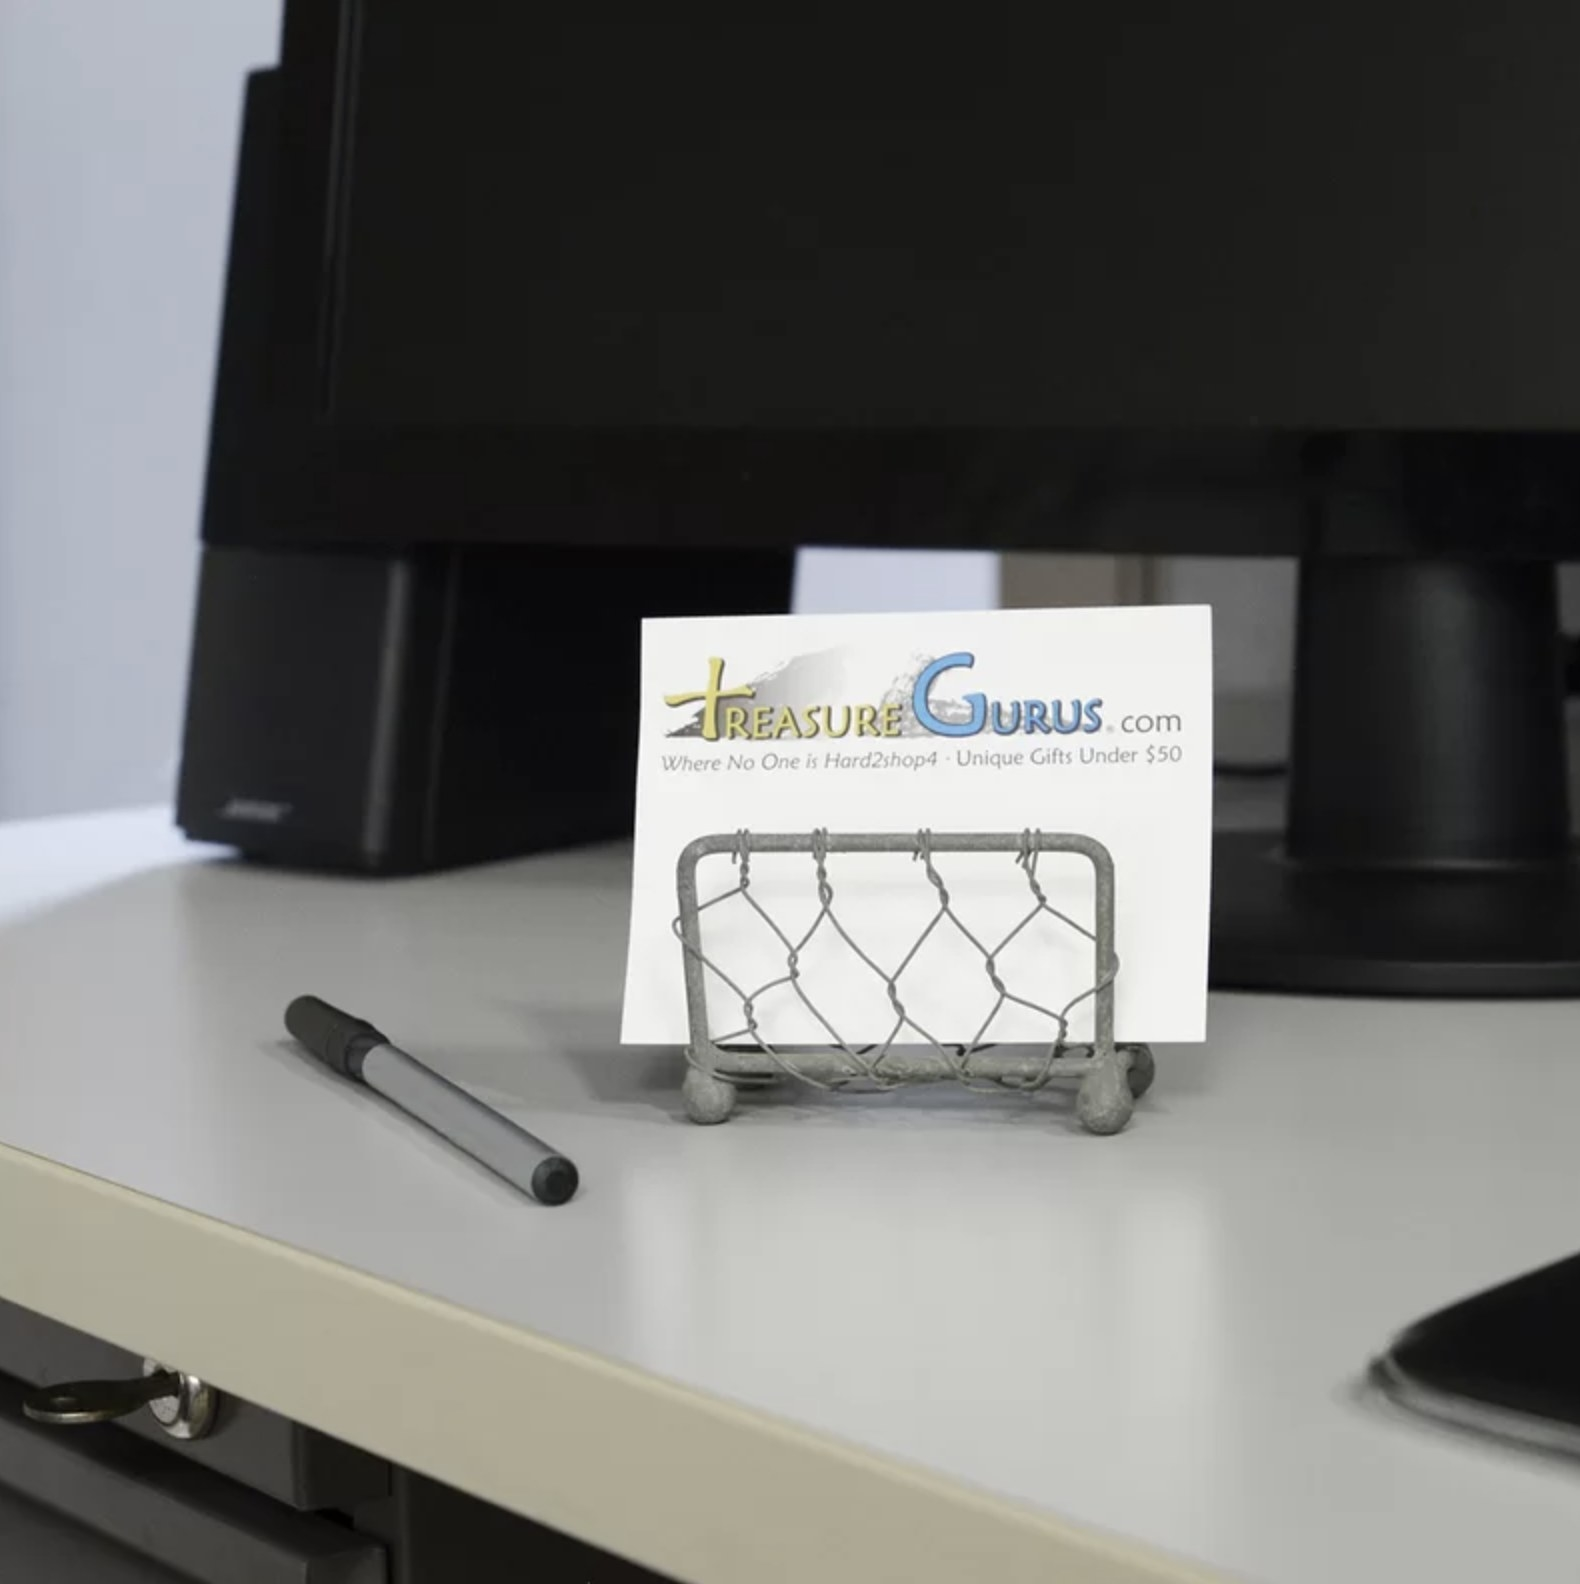 The metal wire business card holder